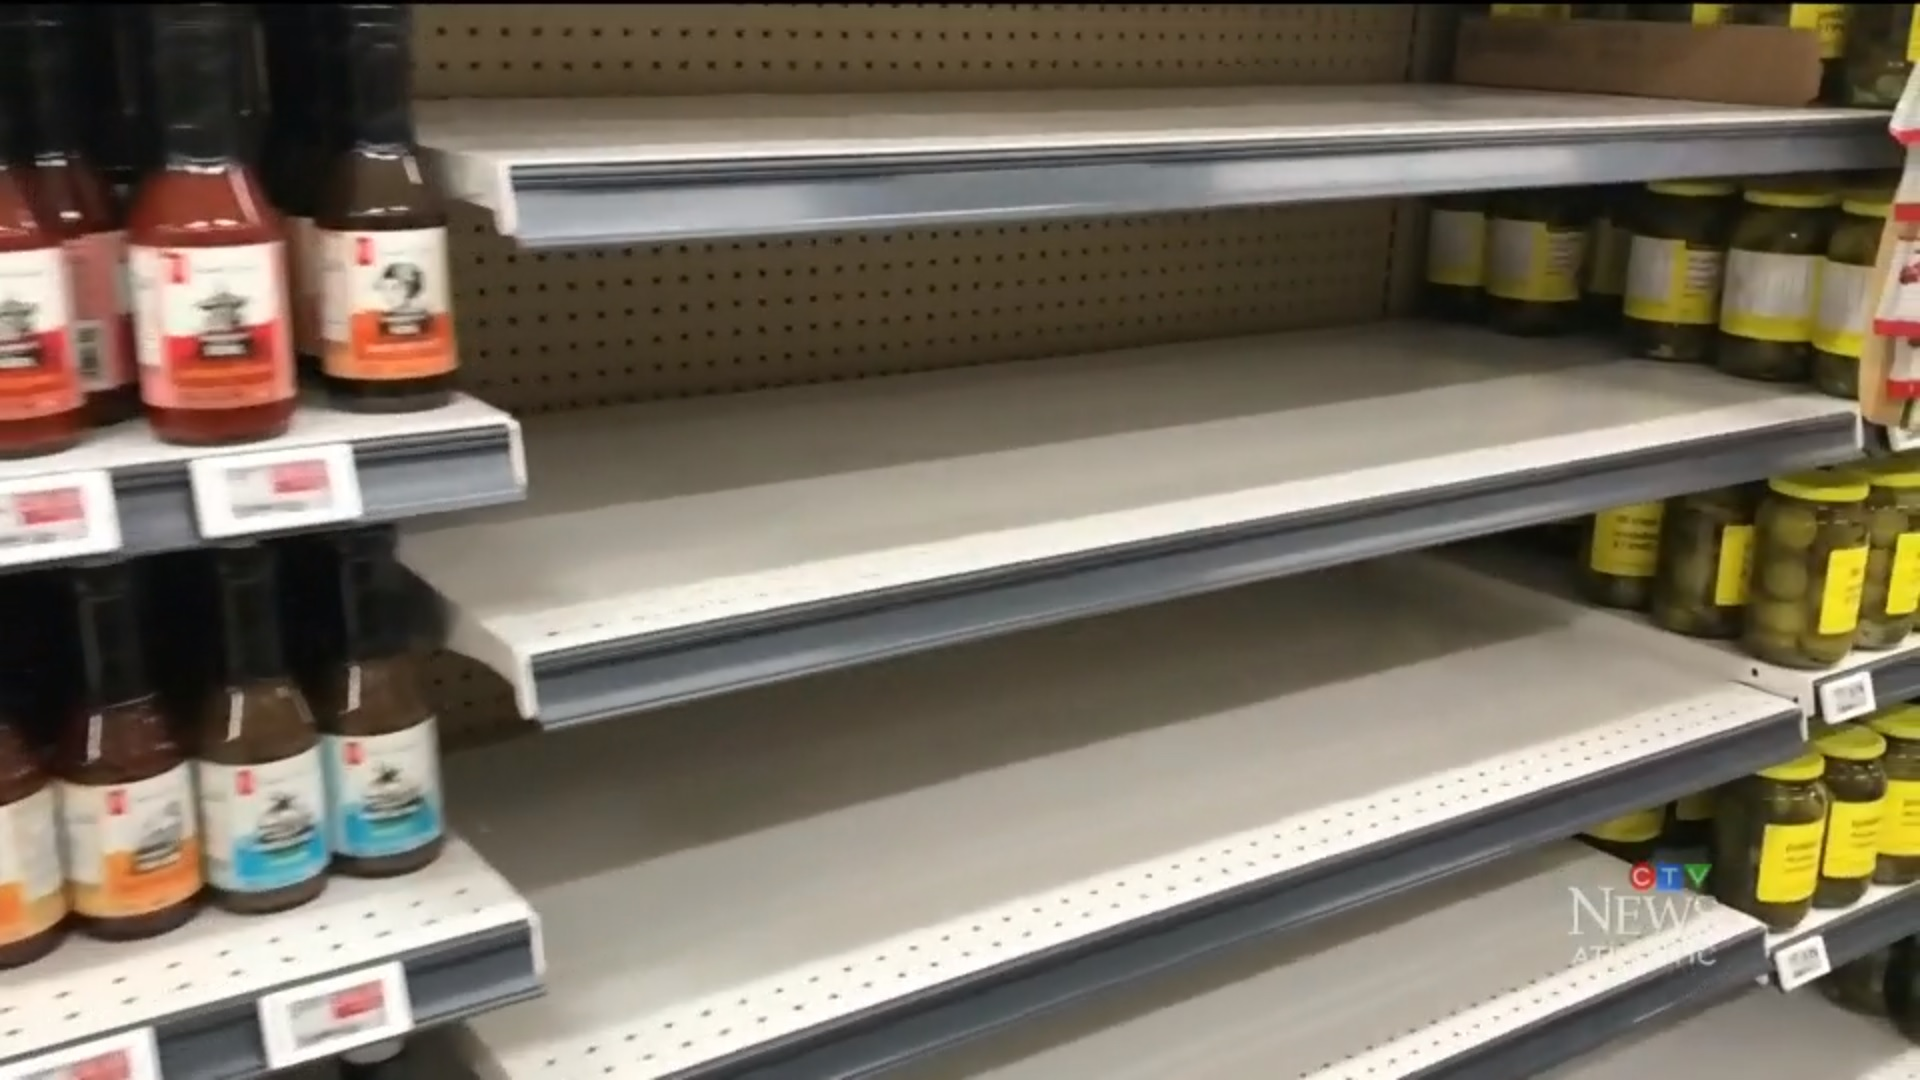 As anti-pipeline blockades continue, grocery stores are starting to run out of goods